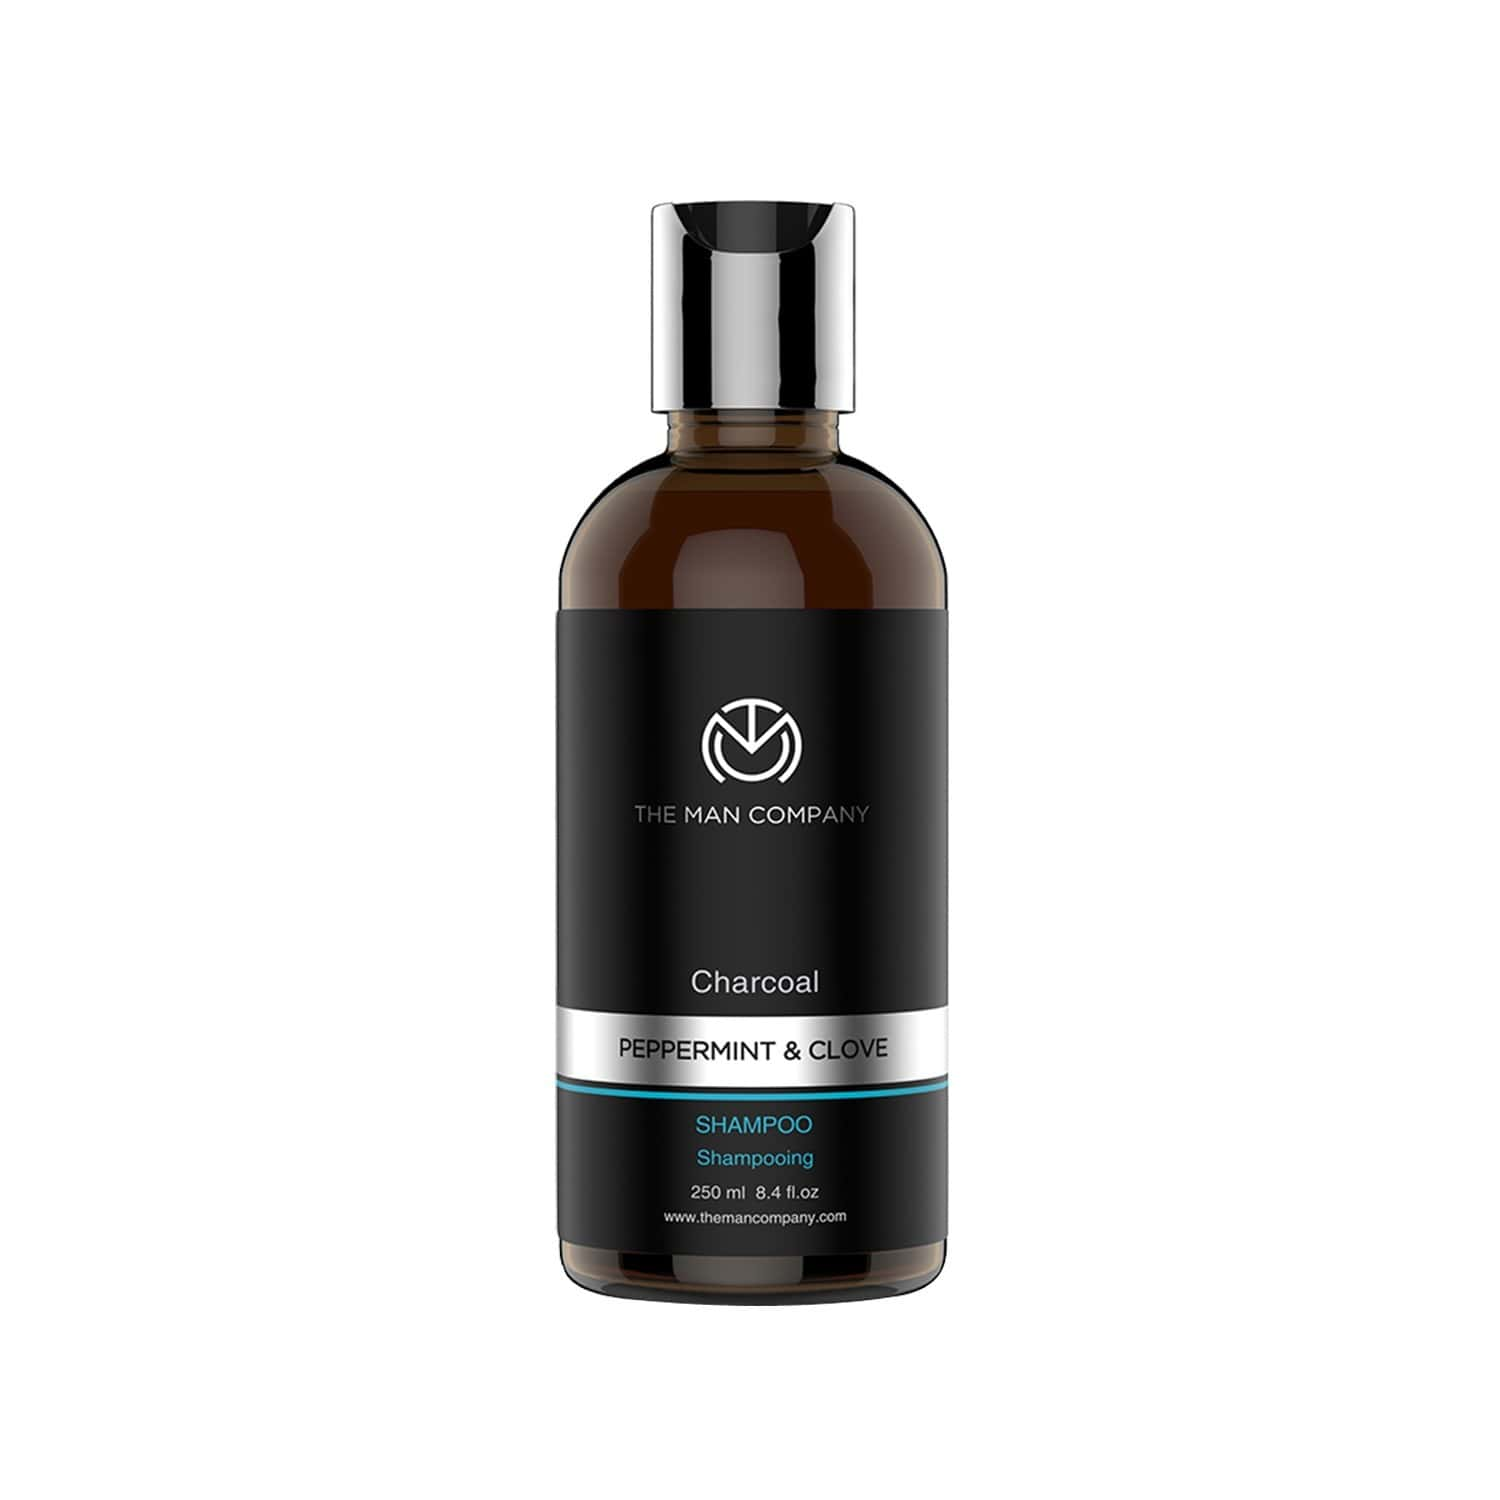 The Man Company Charcoal Shampoo For Oily Scalp To Eliminate Dandruff, Improve Hair Texture - 250 Ml